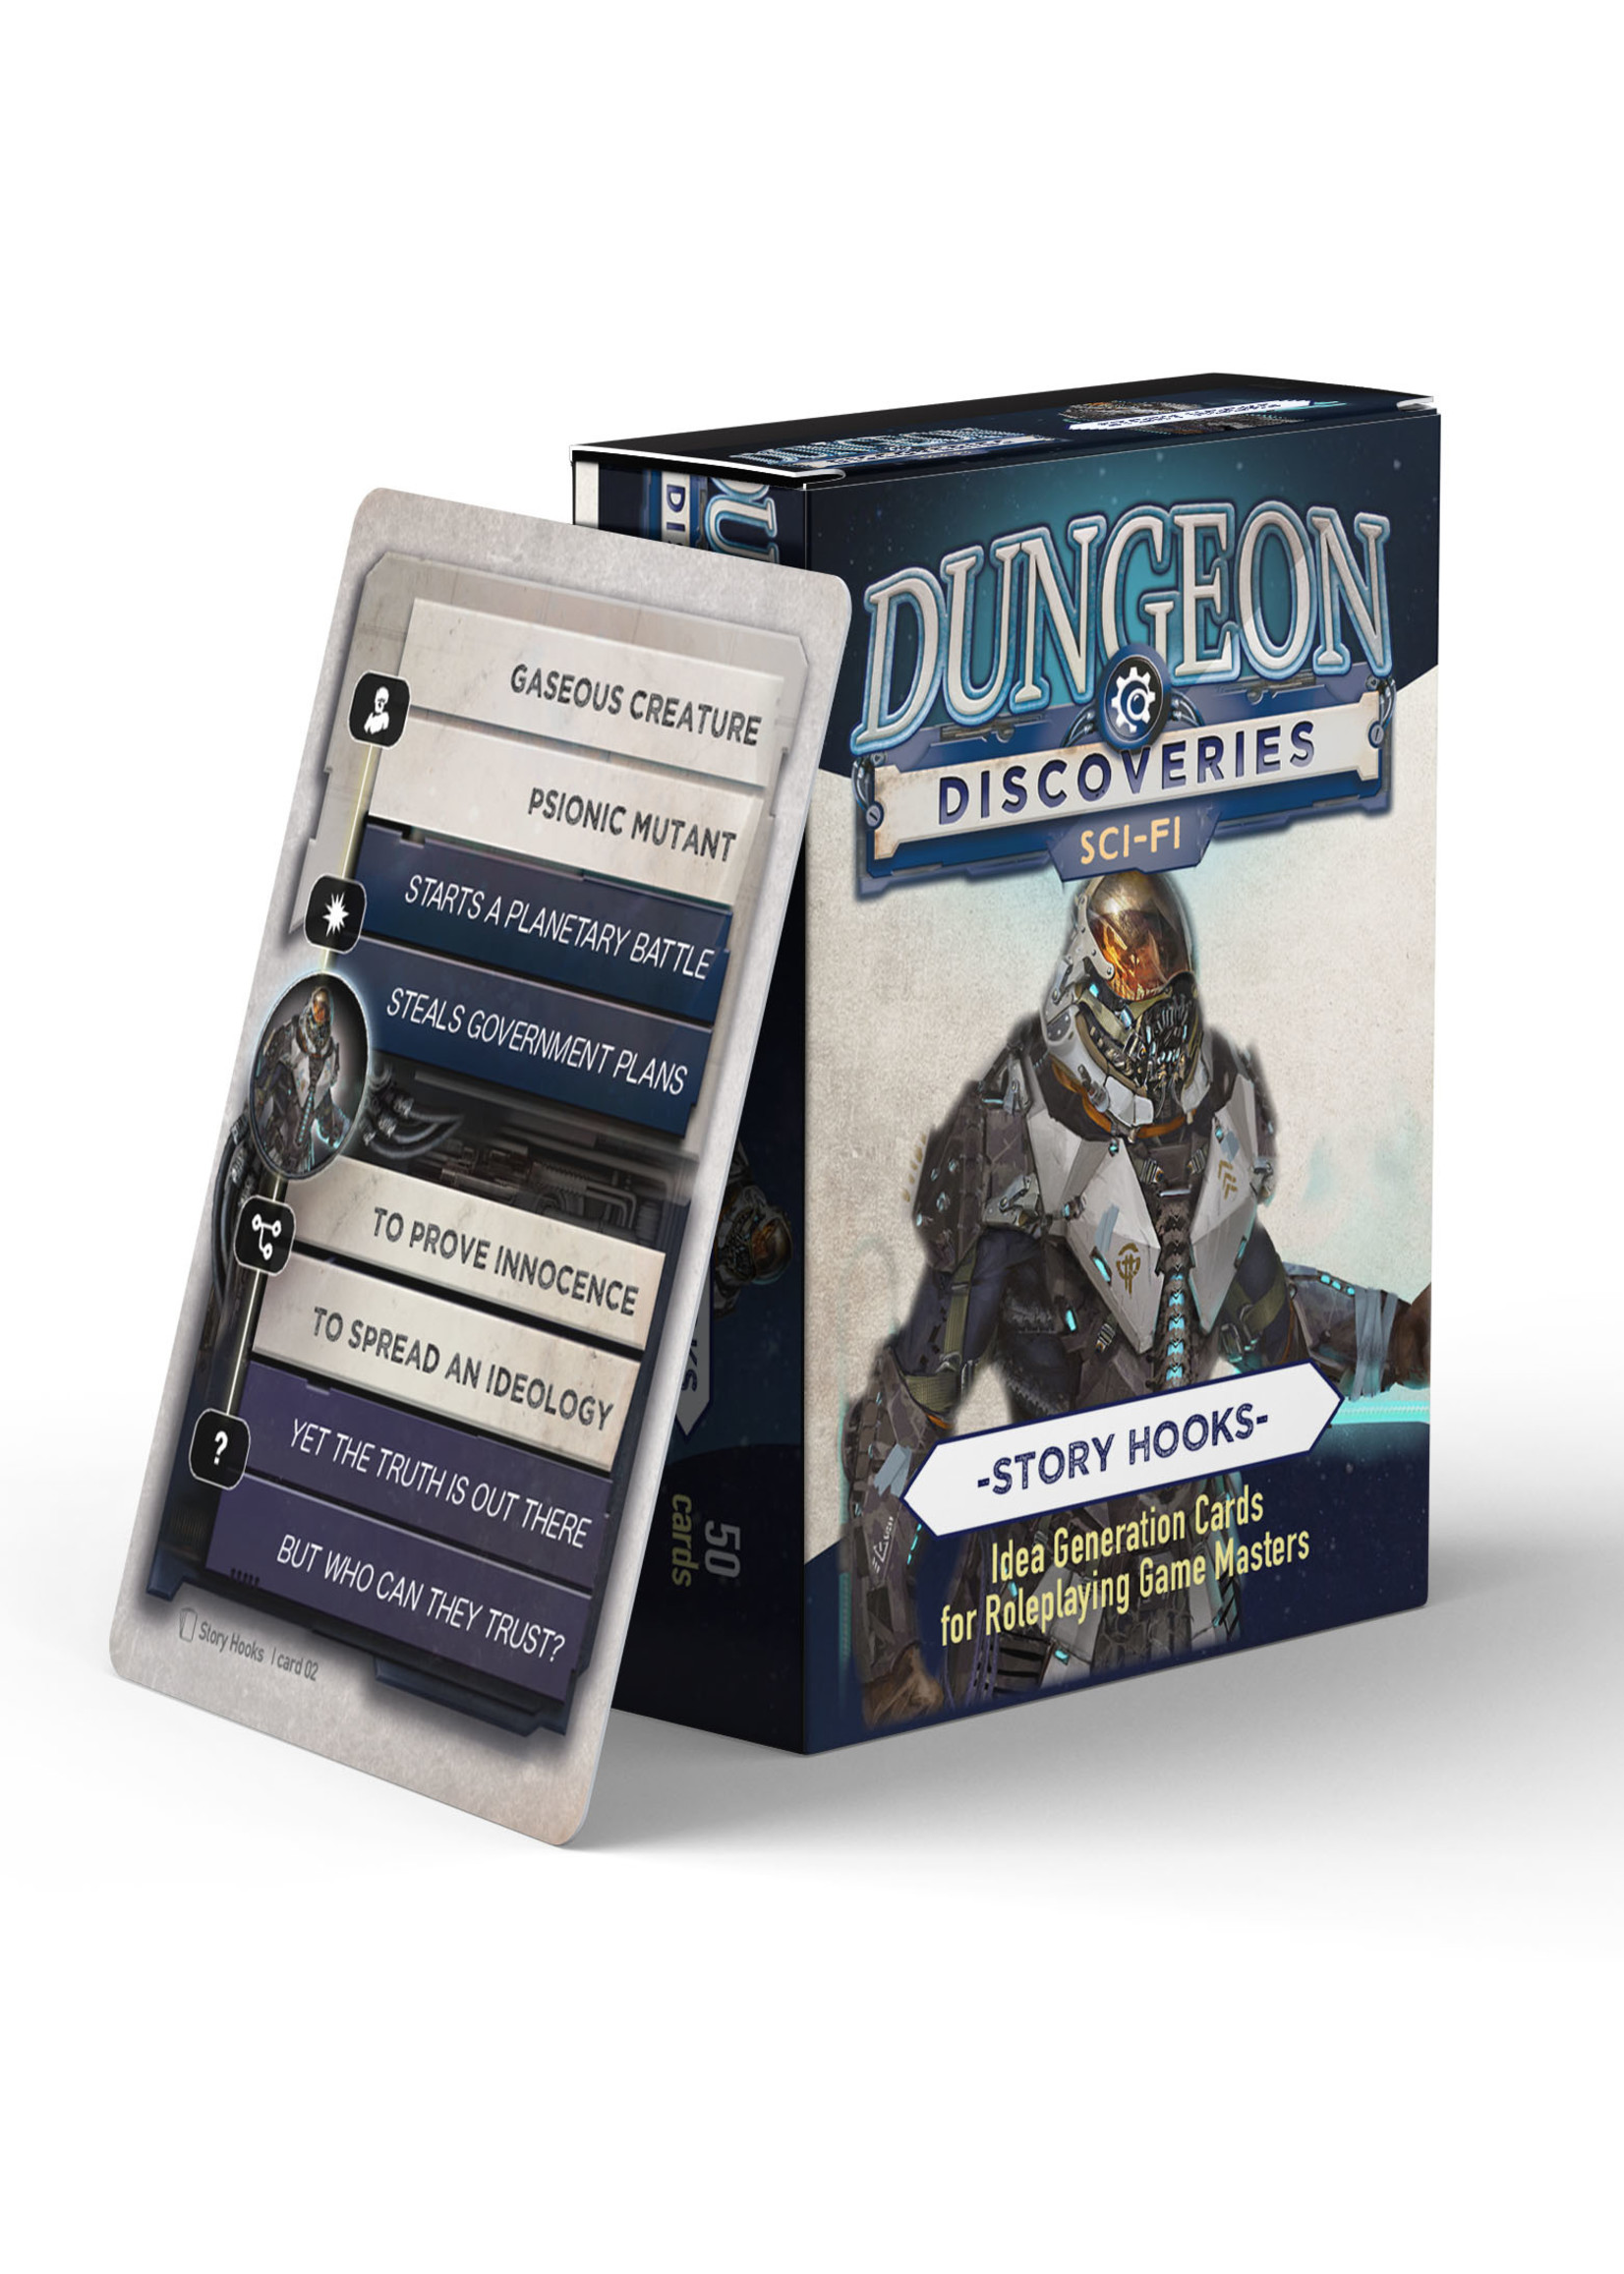 Dungeon Discoveries: Scifi Story Hooks